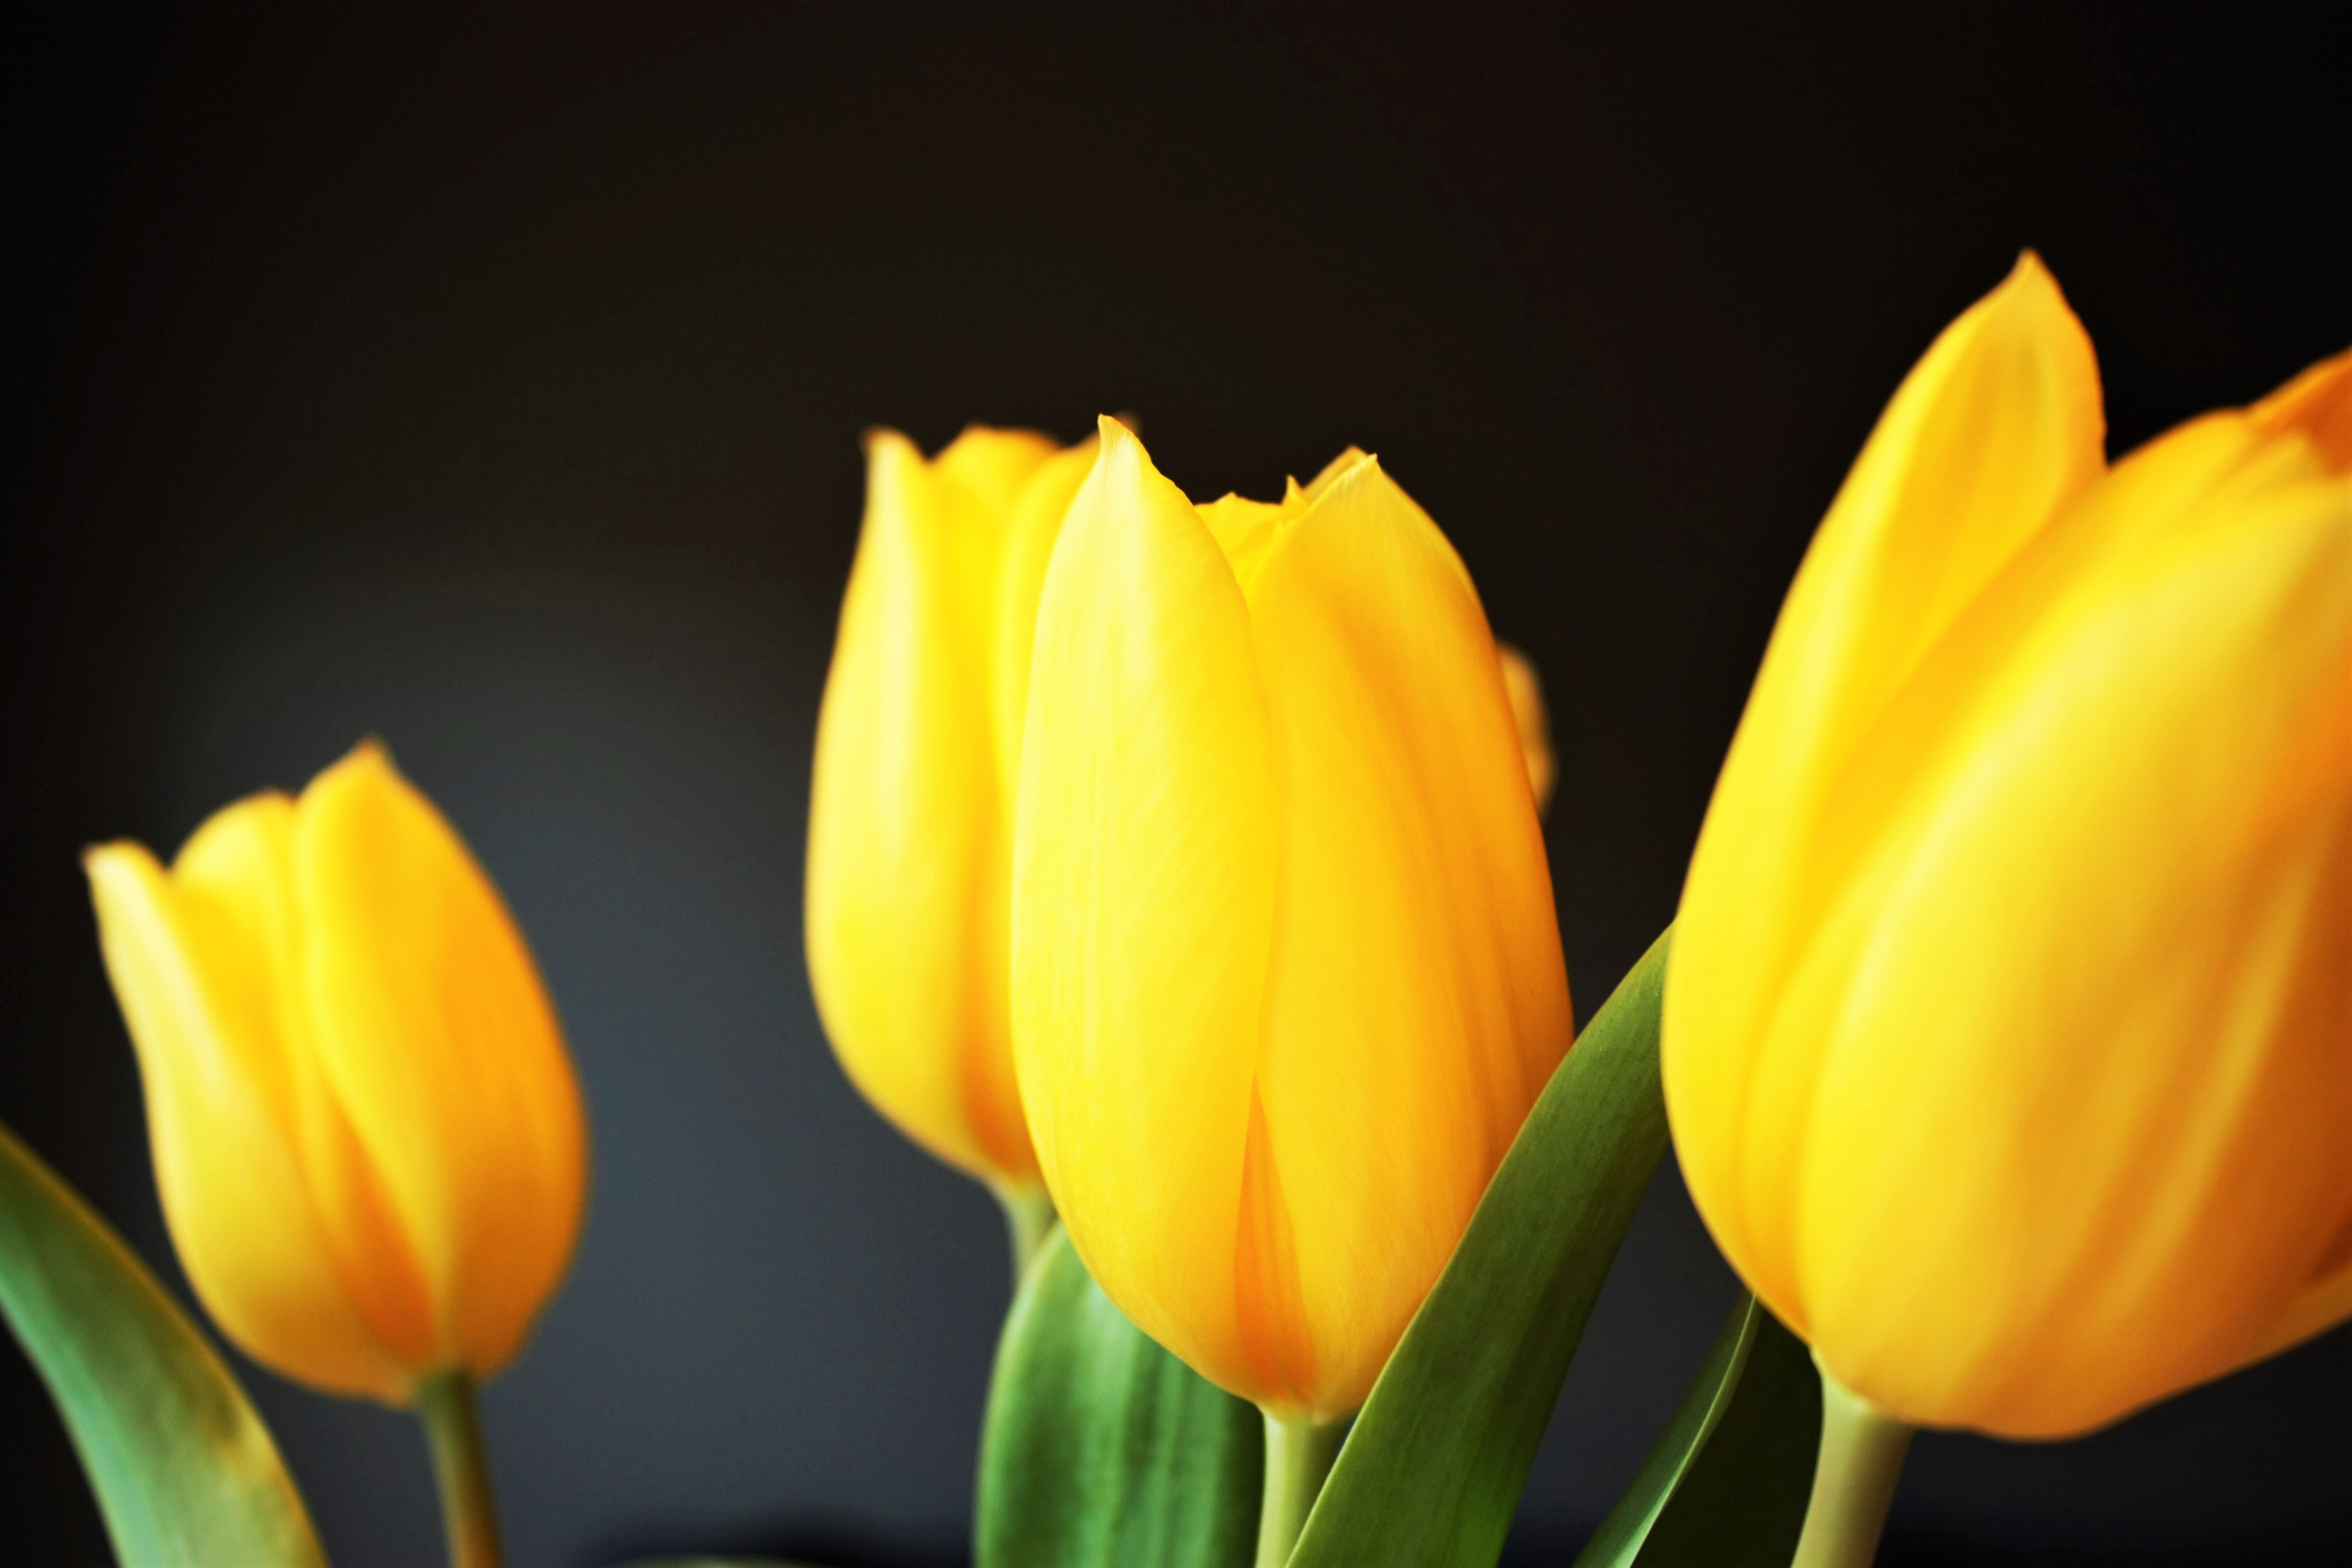 Close-up of closed yellow tulips